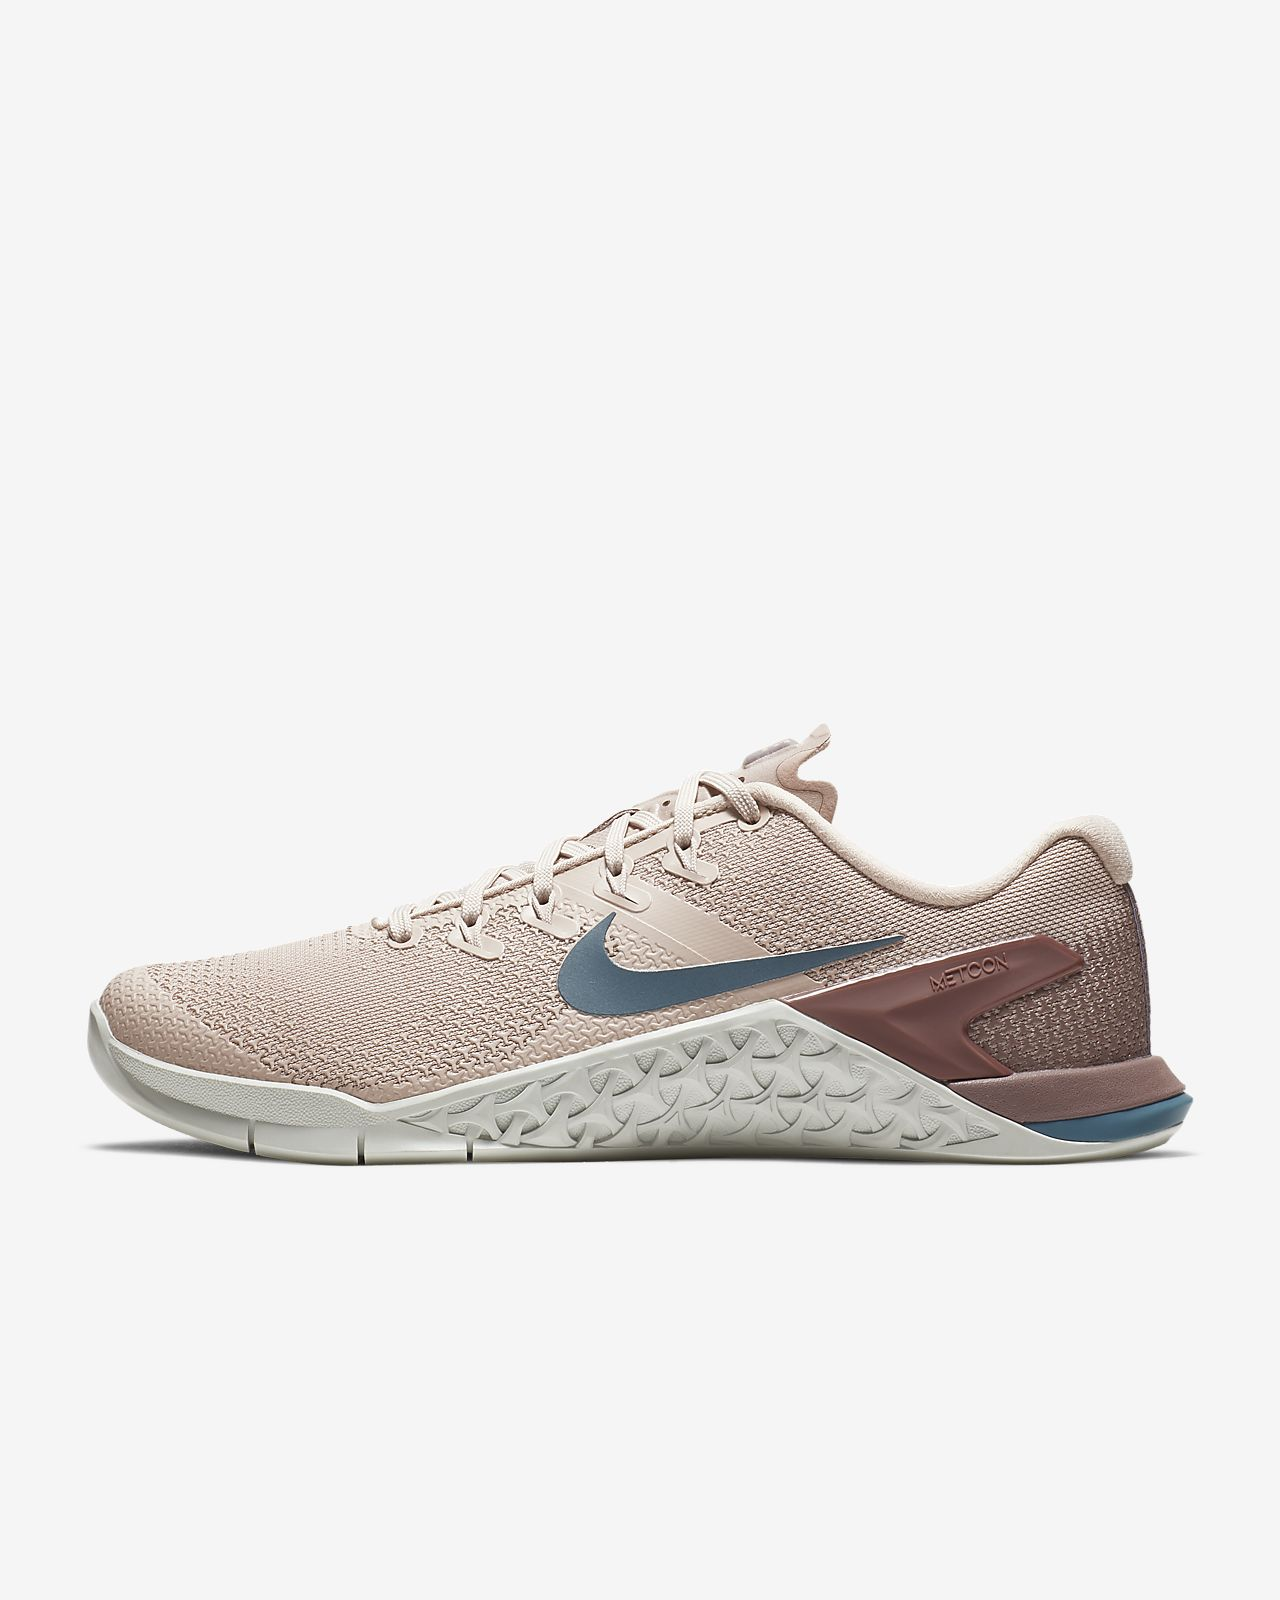 uk availability 1c762 30bef ... new zealand nike metcon 4 damesko til crosstraining og vektløfting  83a57 03334